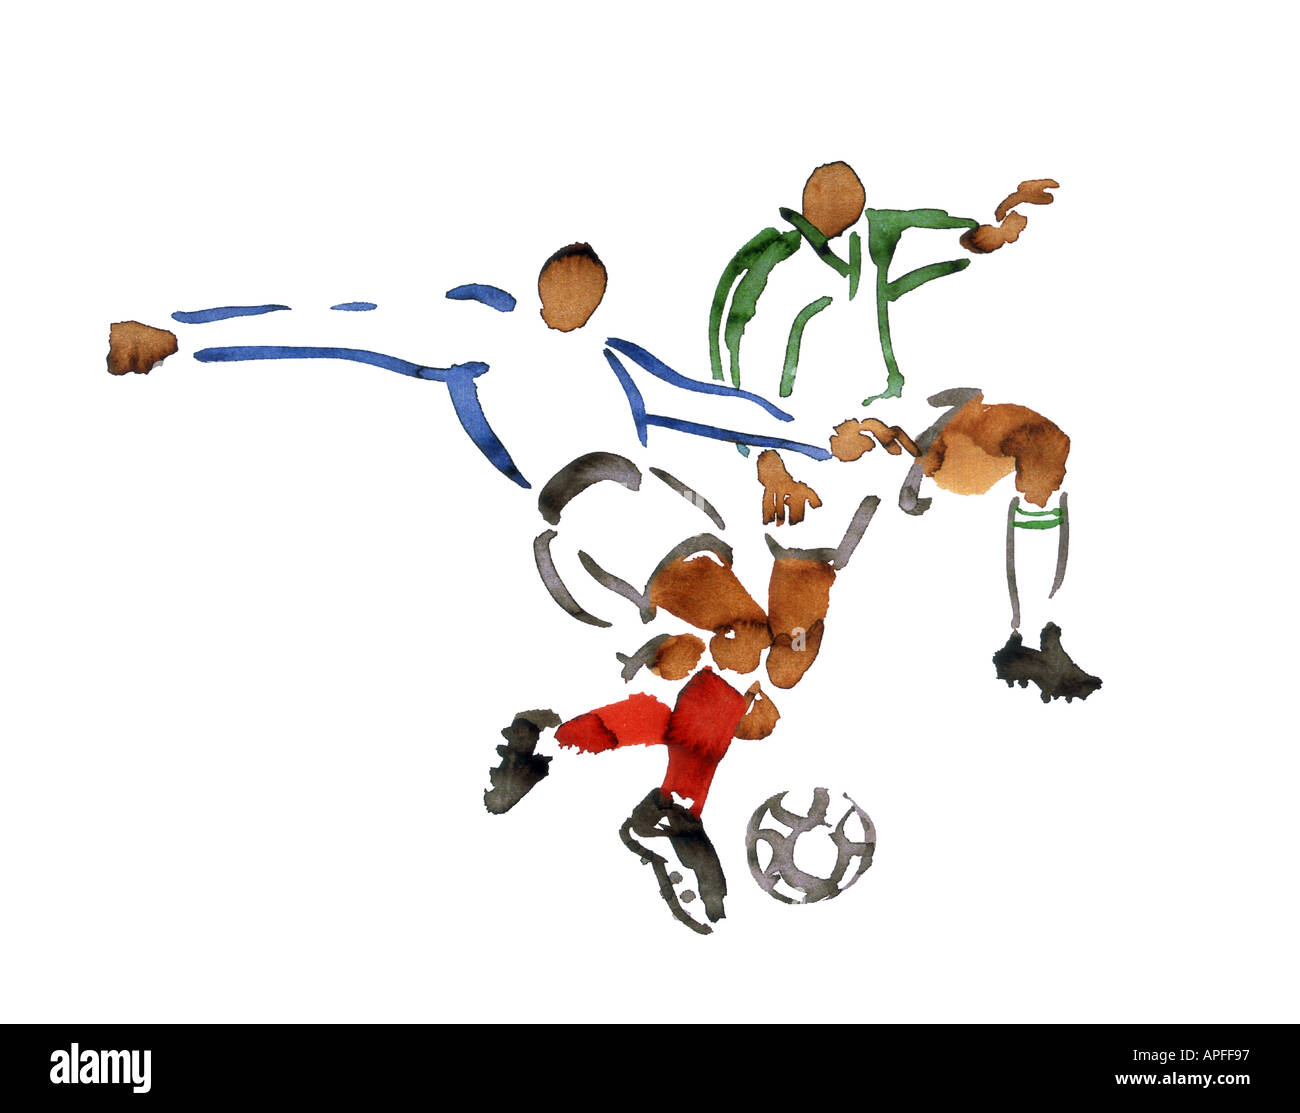 Sport Illustrations Team Sports Ball Games Soccer Football - Stock Image